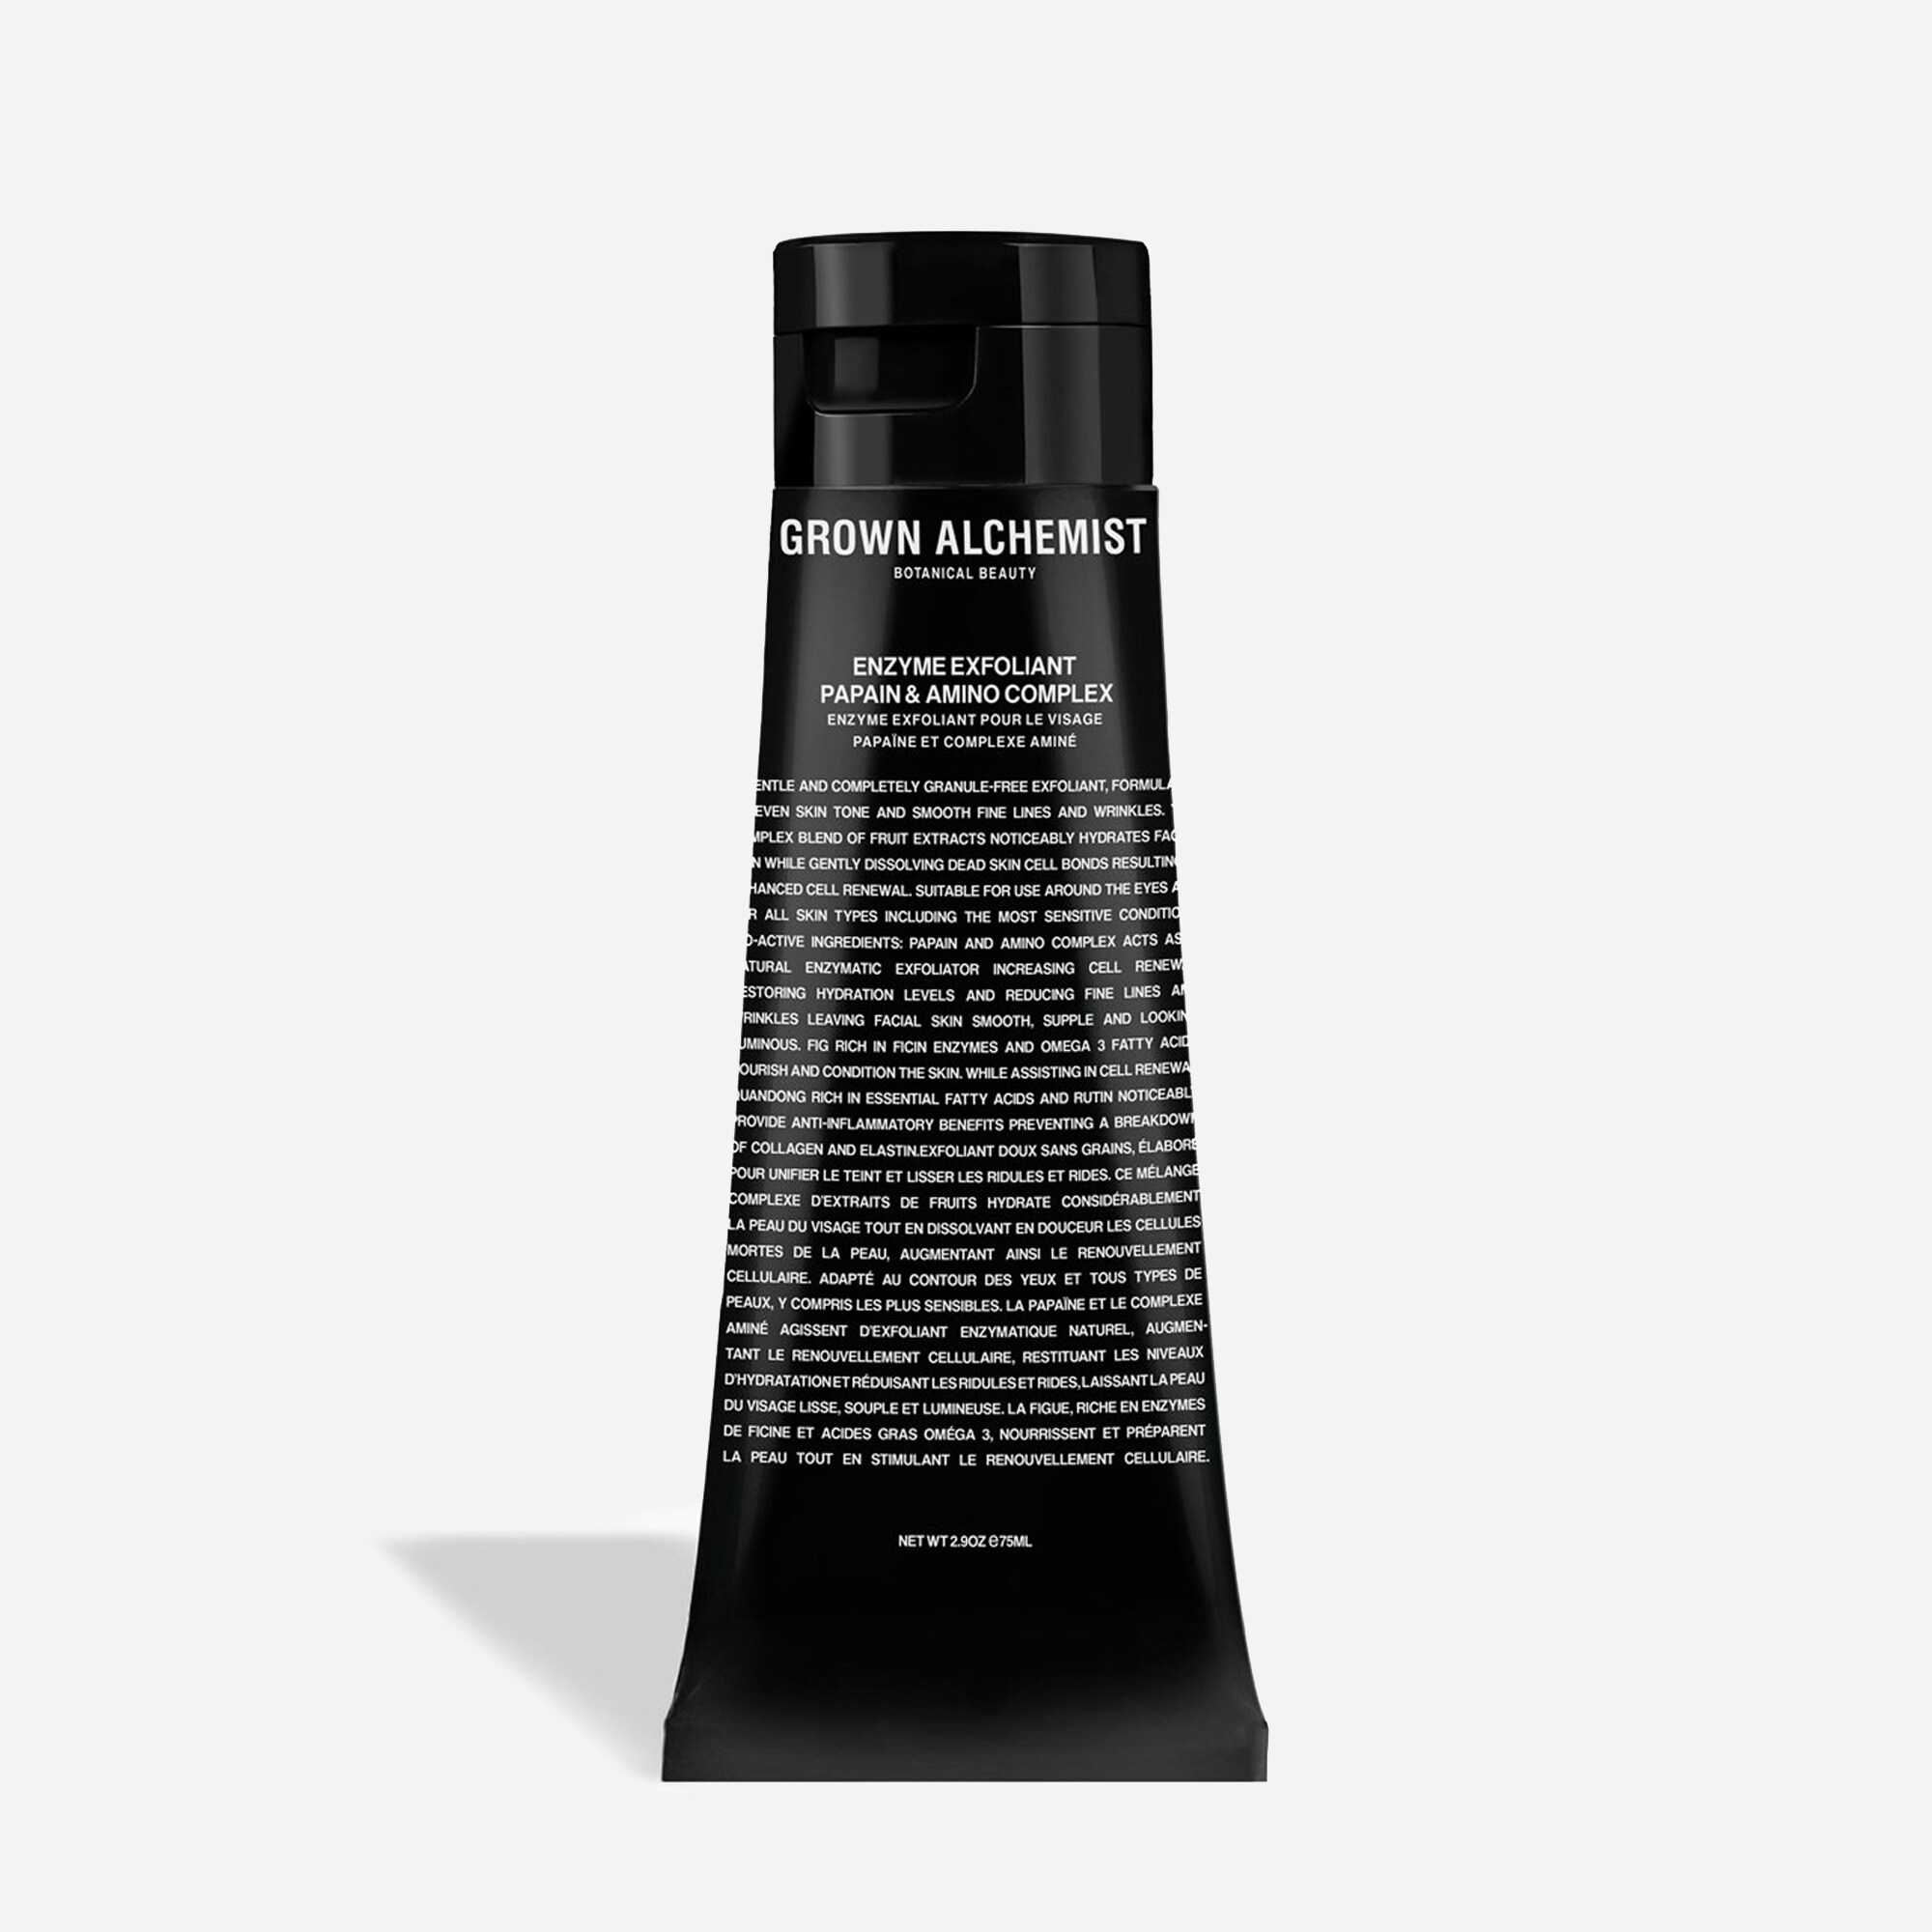 mens GROWN ALCHEMIST® enzyme exfoliant - papain and amino complex 75